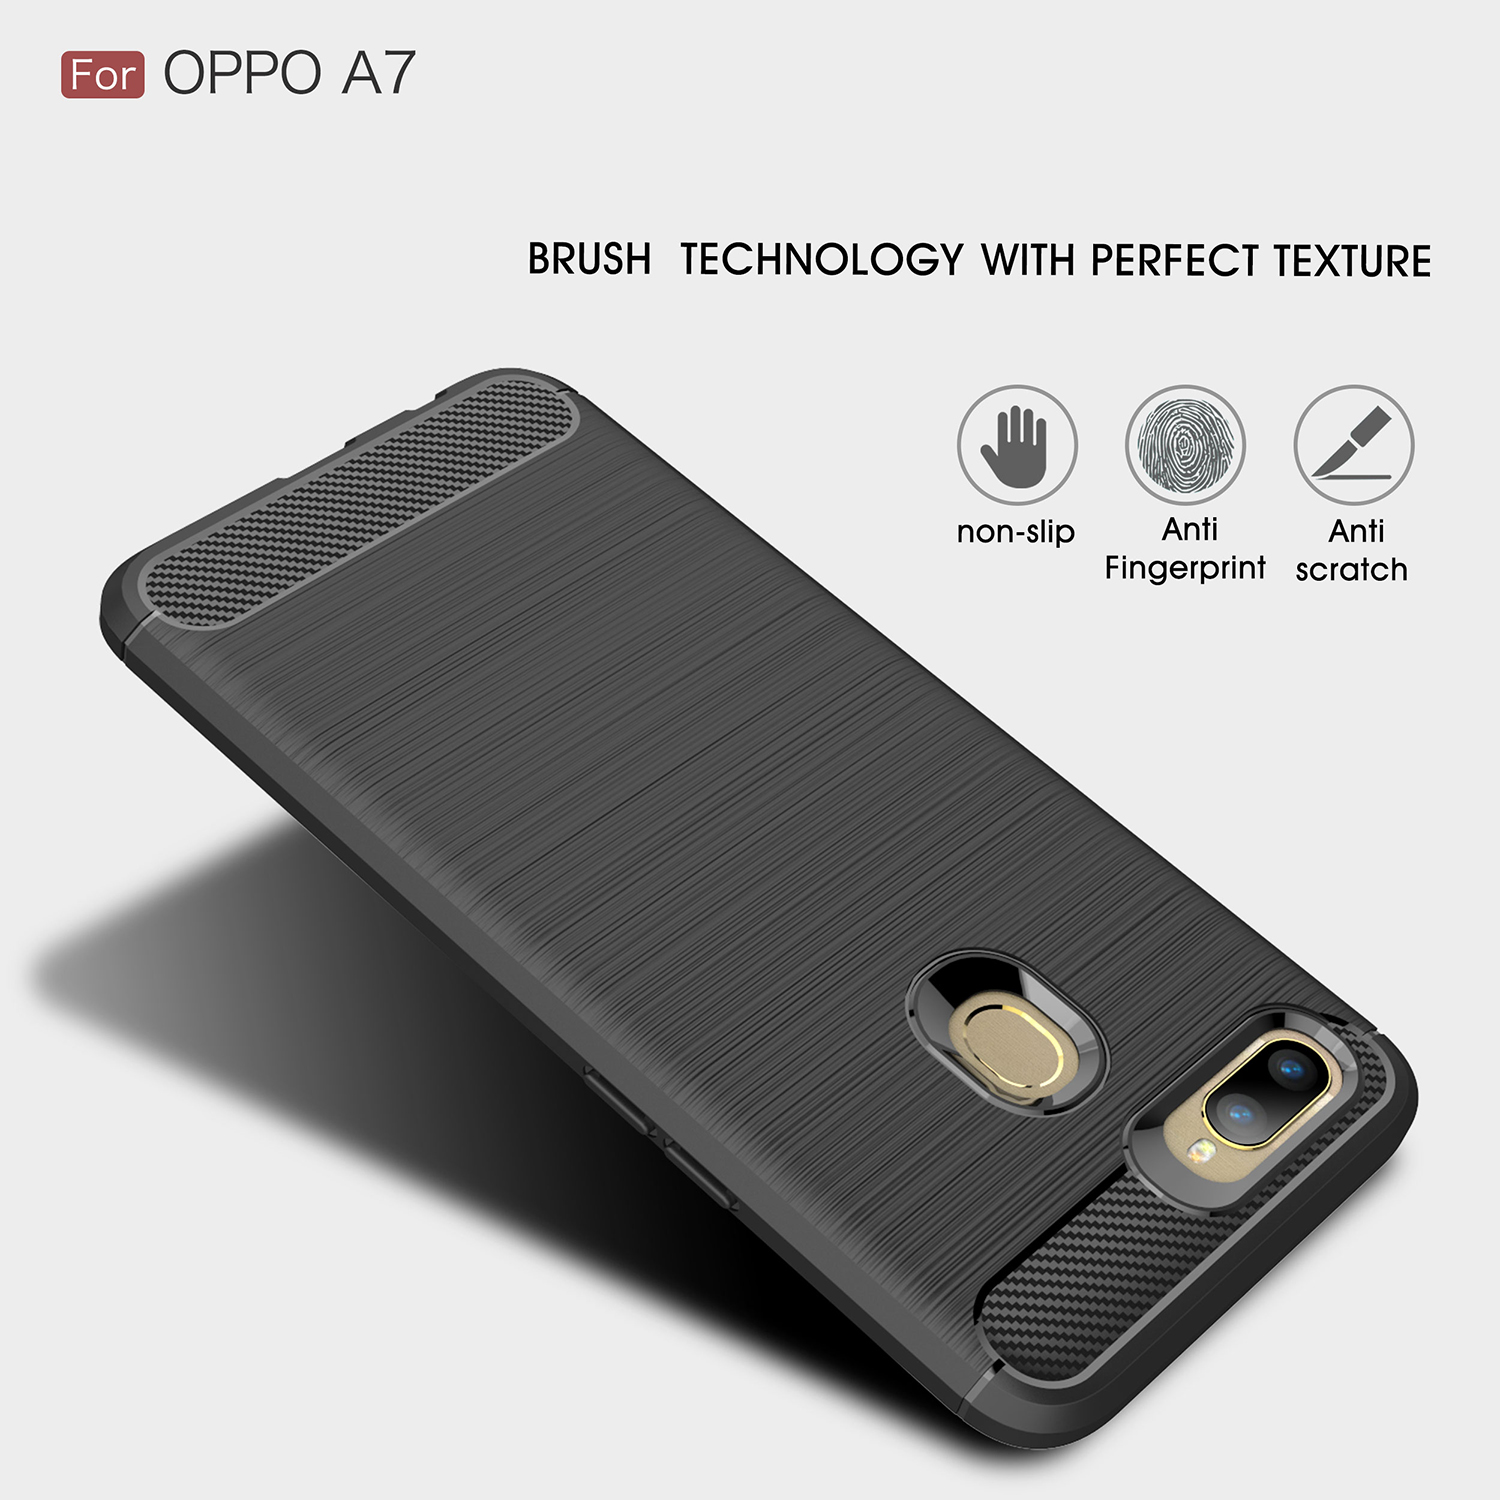 For OPPO A7 Case Soft TPU Silicone Bumper Shockproof Anti knock Phone Case For OPPO A7 Cover For OPPO A7 Funda 6 2 inch BSNOVT in Fitted Cases from Cellphones Telecommunications